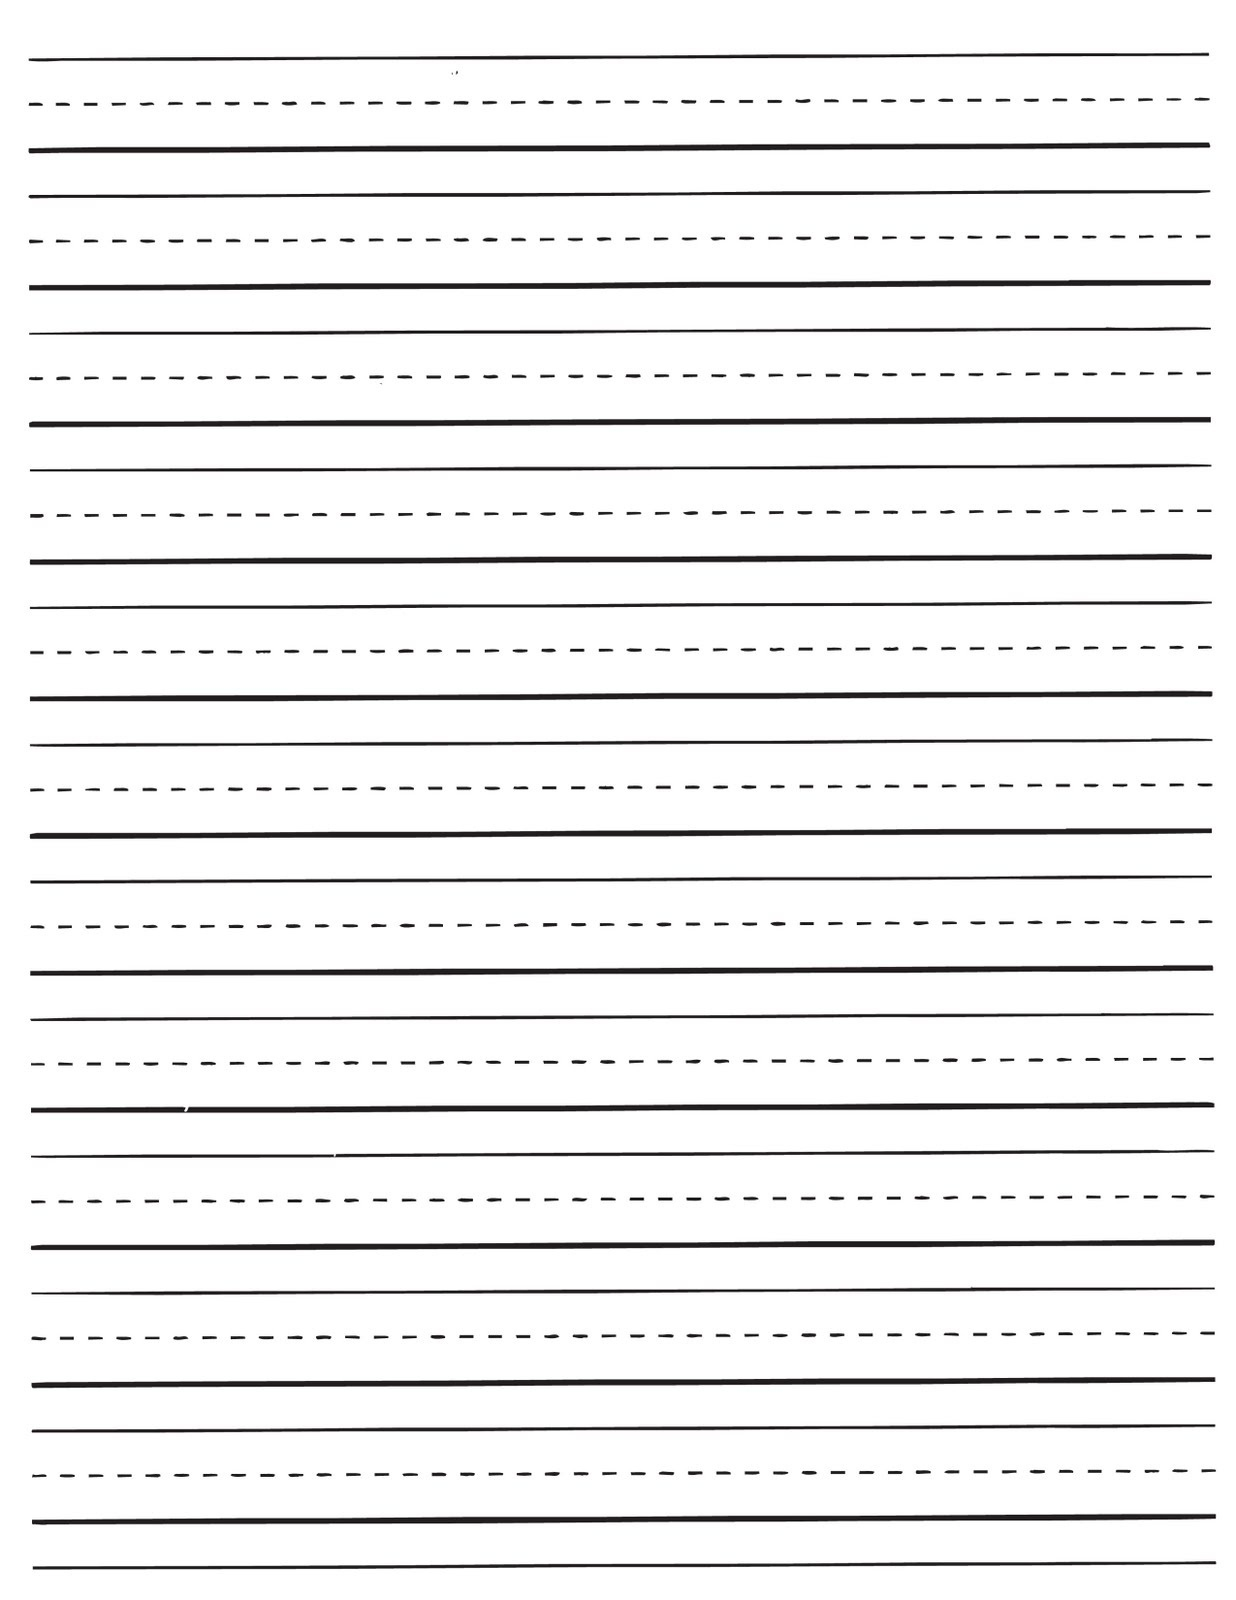 Lined Paper Printable Kindergarten - Tutlin.psstech.co - Free Printable Kindergarten Lined Paper Template